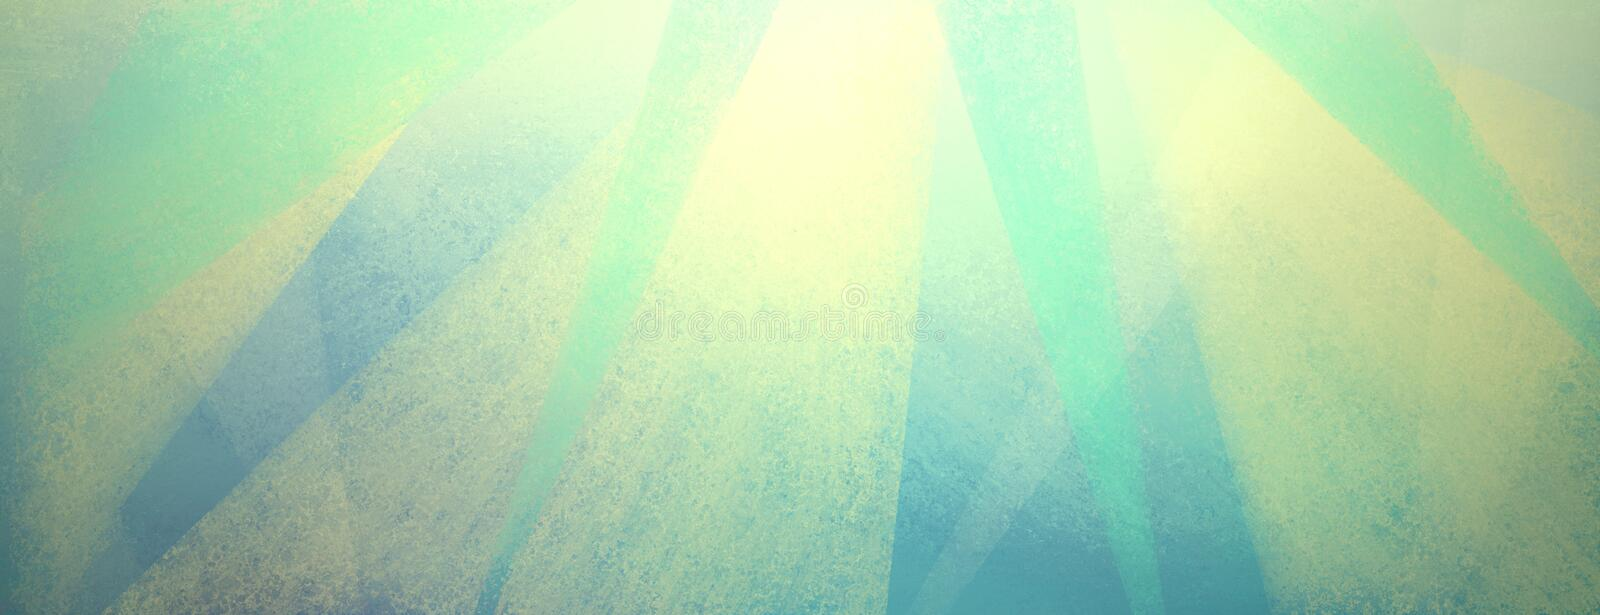 Vintage blue background with distressed light yellow and green stripes and triangles stock photos